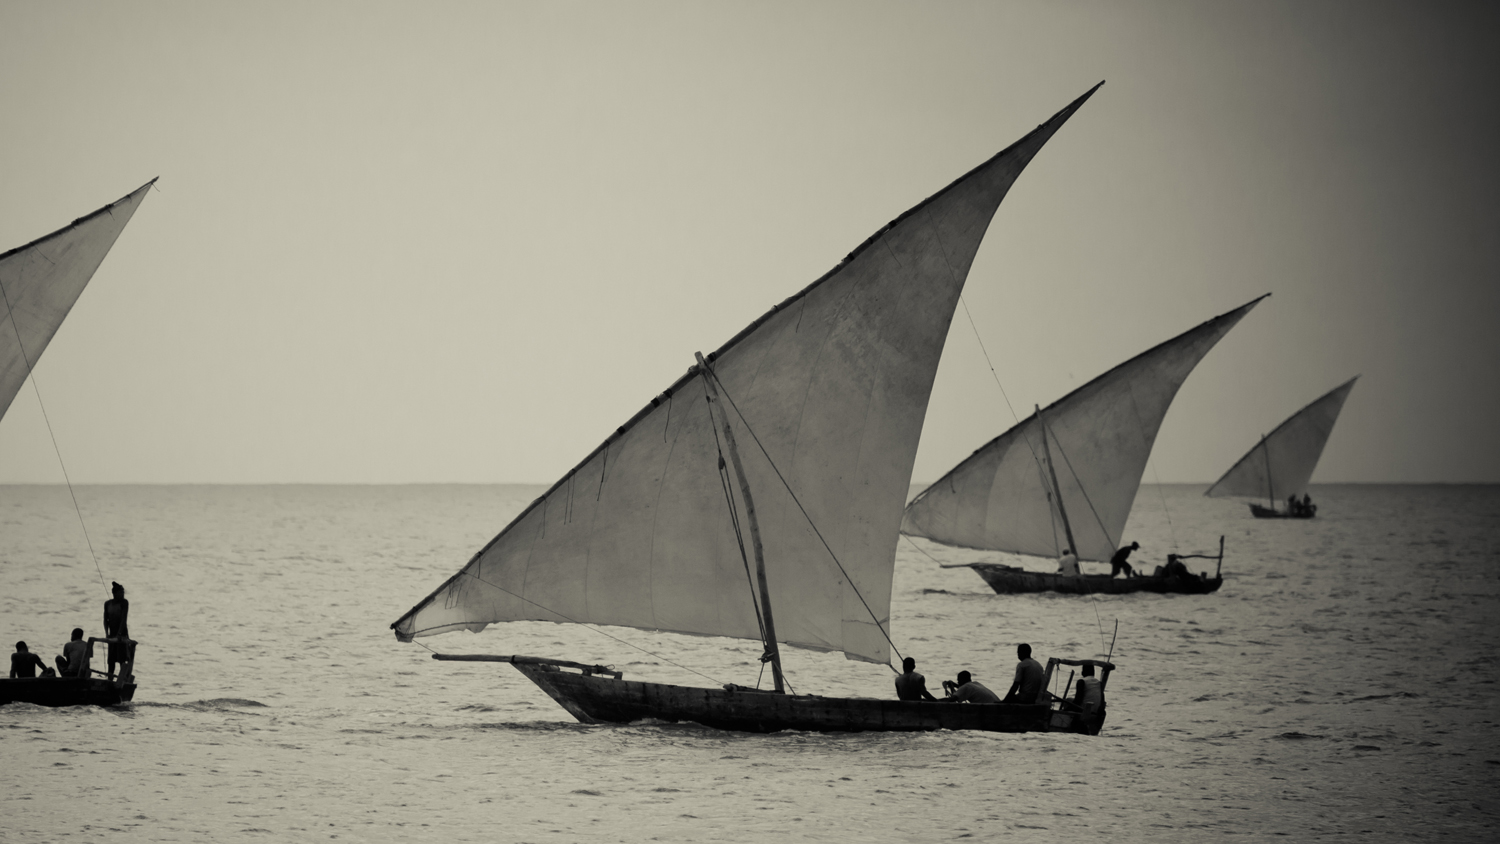 Dhow fishing boats in Zanzibar